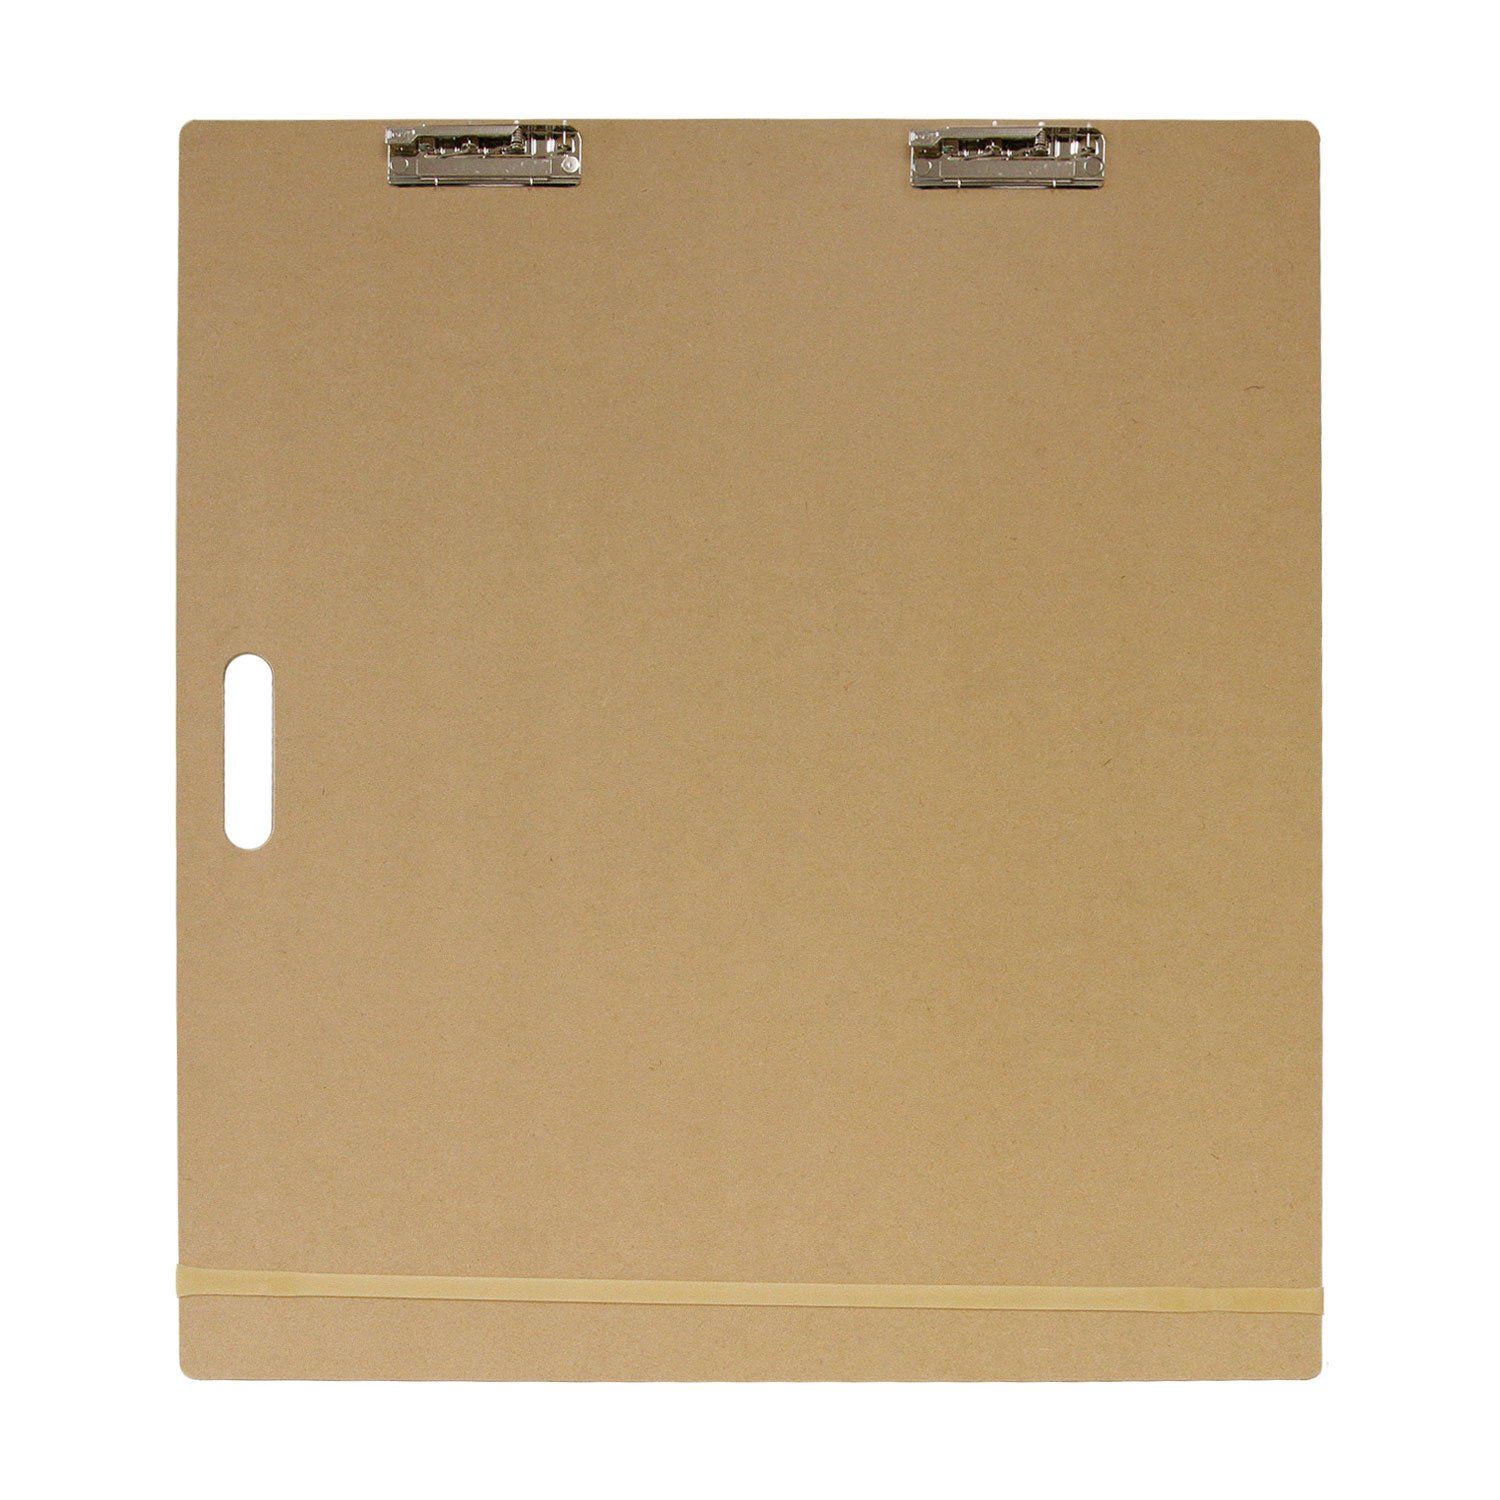 US Art Supply Artist Sketch Tote Board - Great for Classroom, Studio or Field Use (23''x26'') by US Art Supply